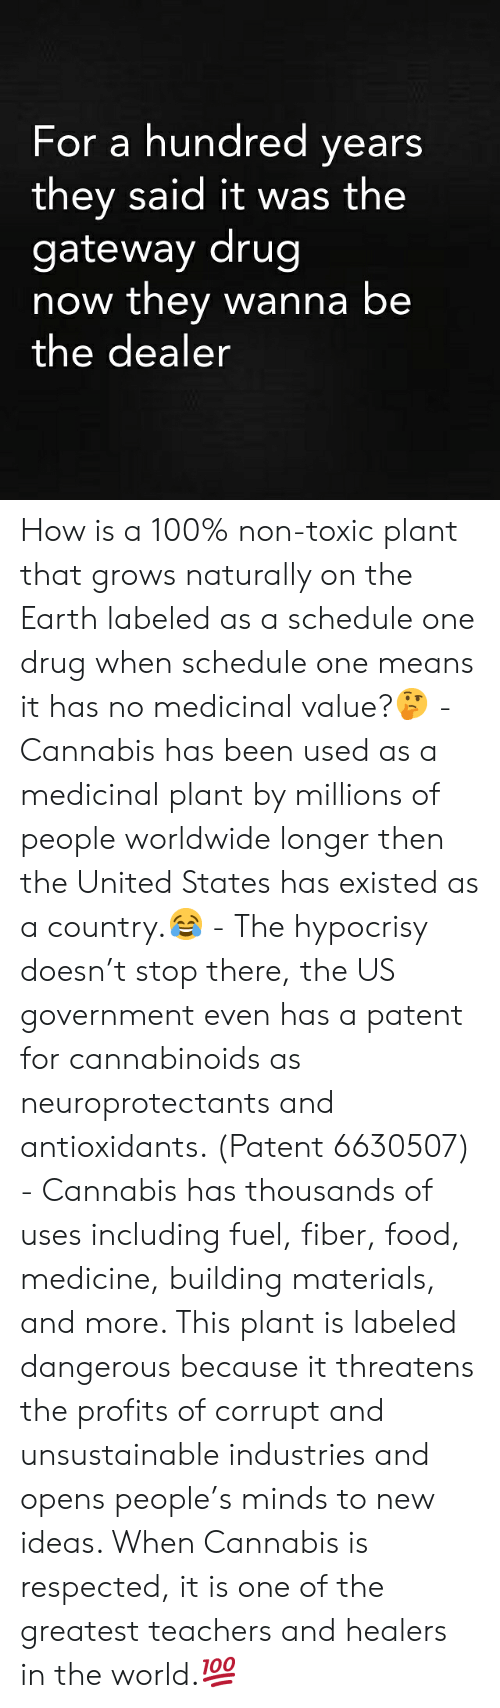 Anaconda, Food, and Memes: For a hundred years  they said it was the  gateway drug  now they wanna be  the dealer How is a 100% non-toxic plant that grows naturally on the Earth labeled as a schedule one drug when schedule one means it has no medicinal value?🤔 - Cannabis has been used as a medicinal plant by millions of people worldwide longer then the United States has existed as a country.😂 - The hypocrisy doesn't stop there, the US government even has a patent for cannabinoids as neuroprotectants and antioxidants. (Patent 6630507) - Cannabis has thousands of uses including fuel, fiber, food, medicine, building materials, and more. This plant is labeled dangerous because it threatens the profits of corrupt and unsustainable industries and opens people's minds to new ideas. When Cannabis is respected, it is one of the greatest teachers and healers in the world.💯